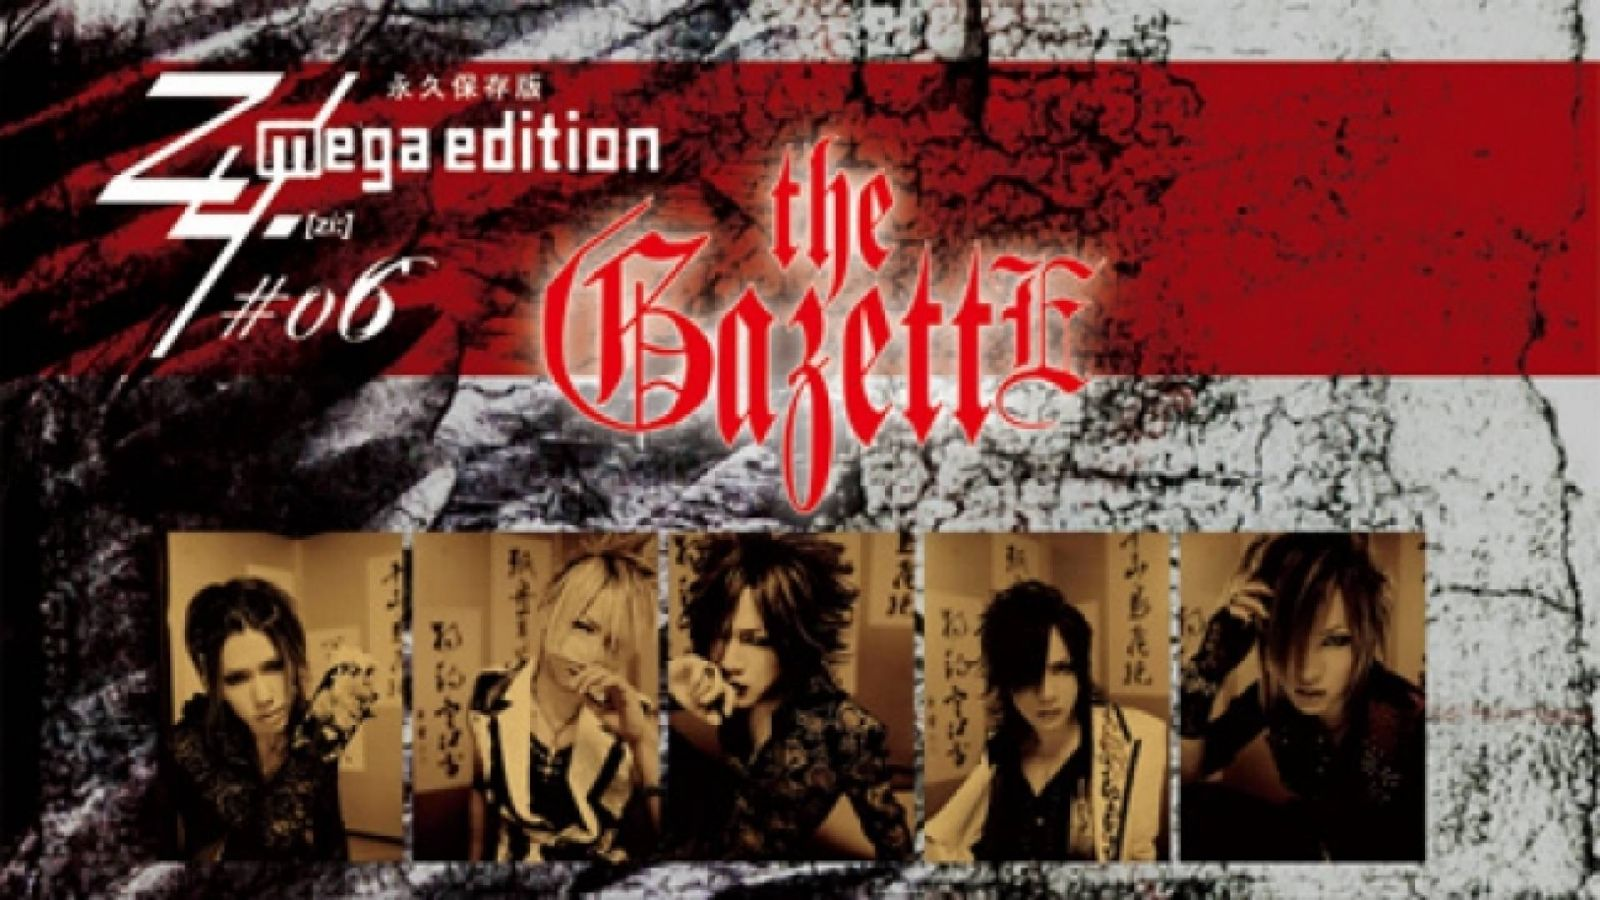 The GazettE - Zy MEGA EDITION #6 © Star Child